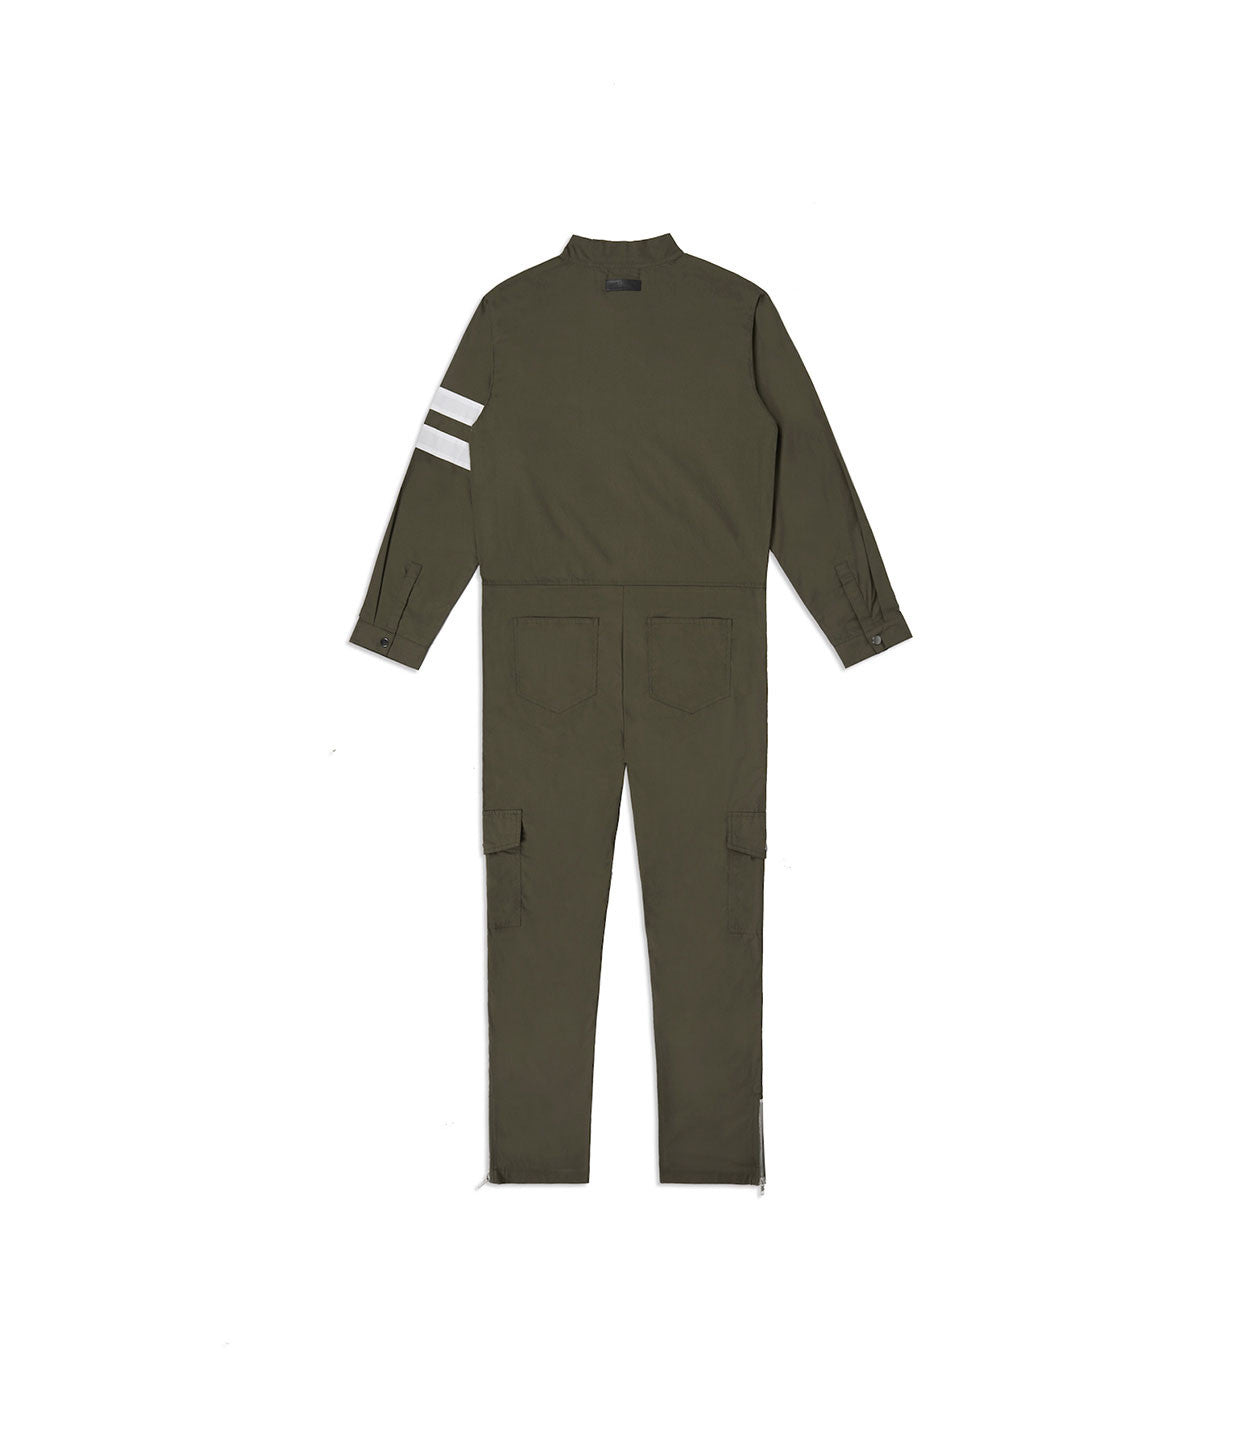 JS368 Boiler Suit - Khaki - underated london - underatedco - 8